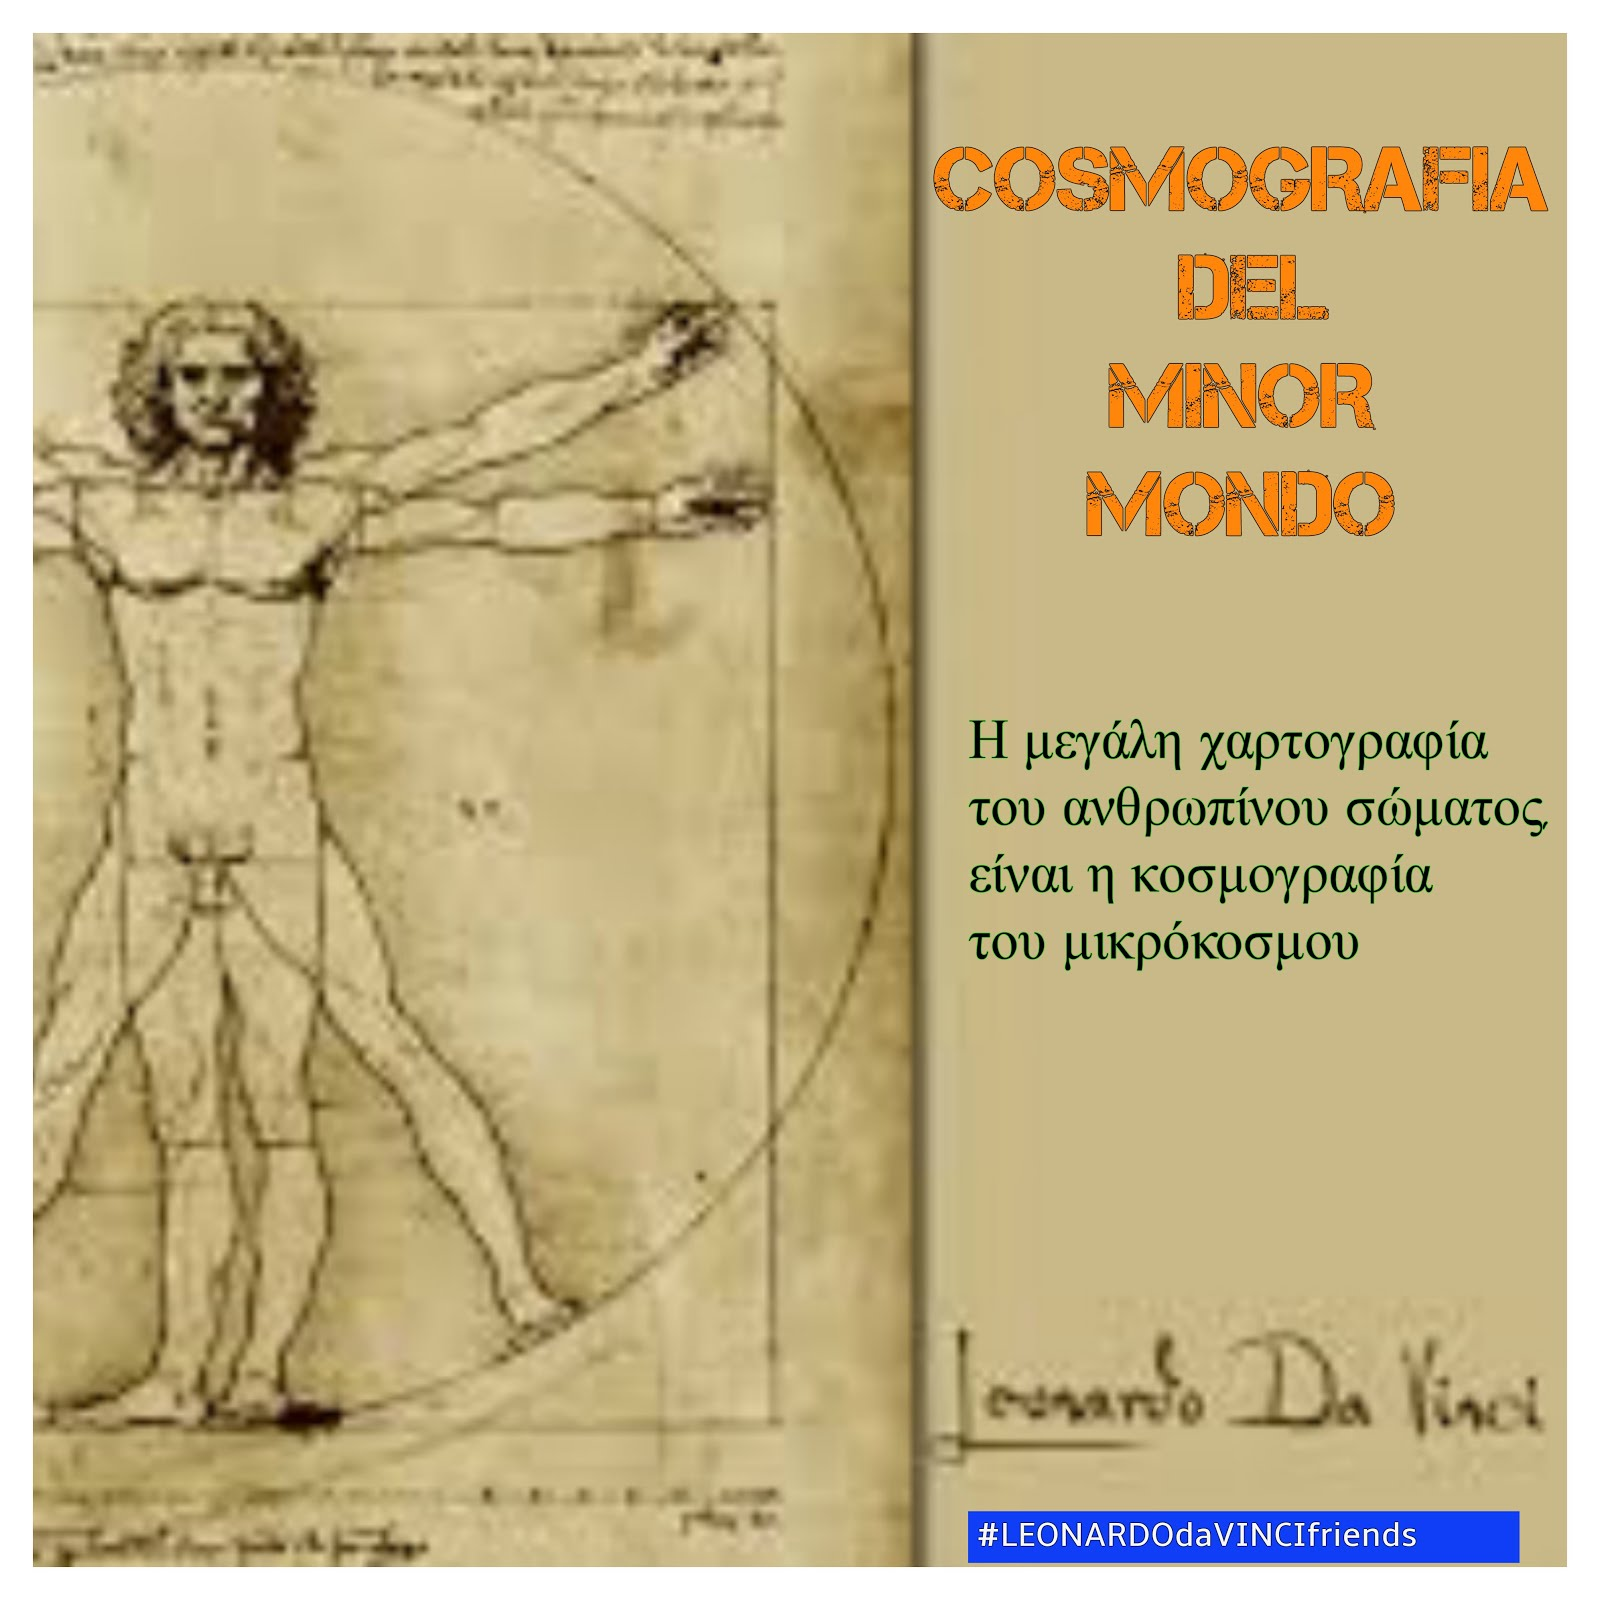 Cosmografia del Minor Mondo